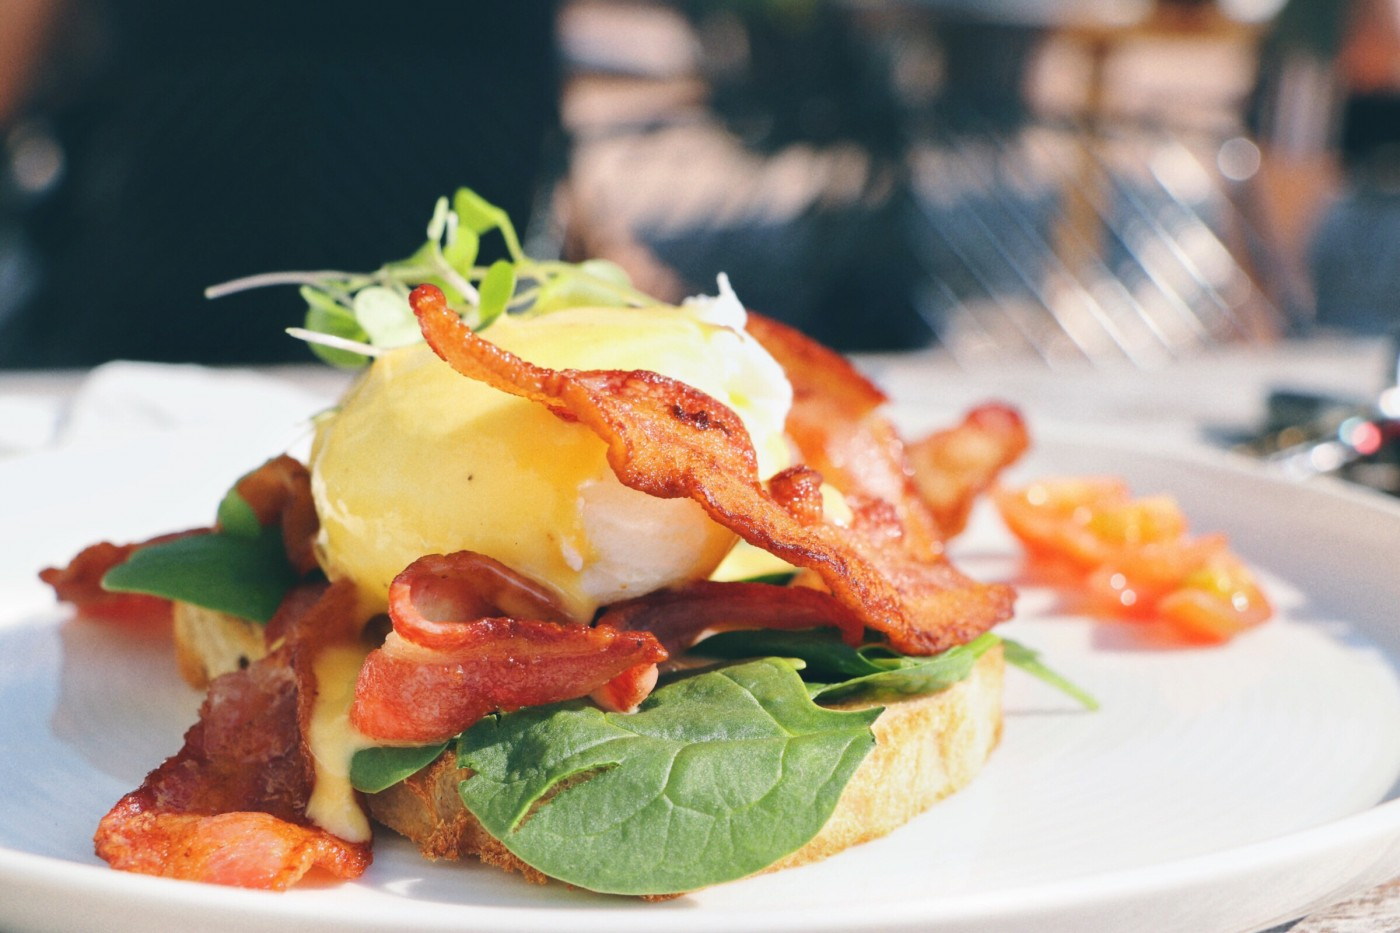 Image of eggs benedict breakfast dish from Odelay - Queenstown Dining